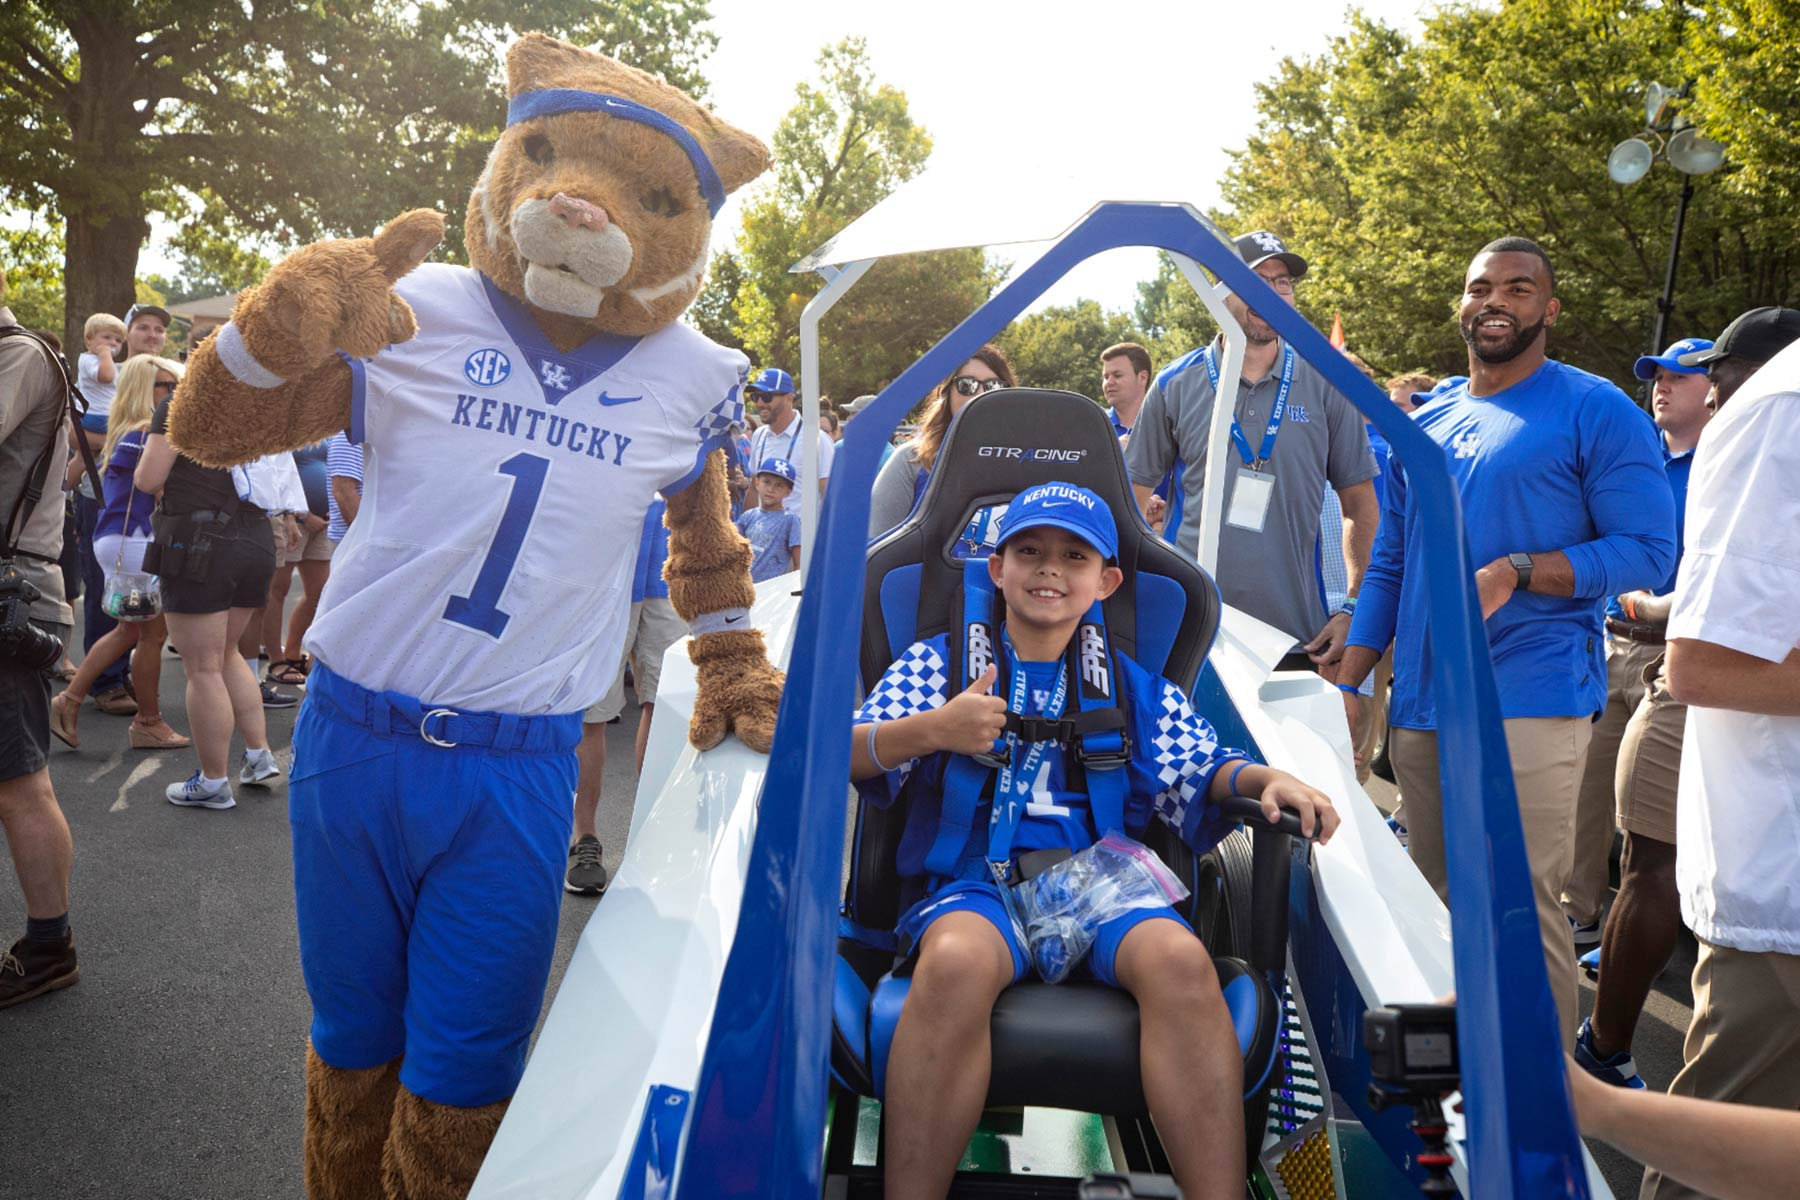 Maximo Shemwell, a young white boy dressed in UK gear, gives a thumbs up while he sits in a futuristic-looking open car. Next to him, the UK wildcat mascot waves.